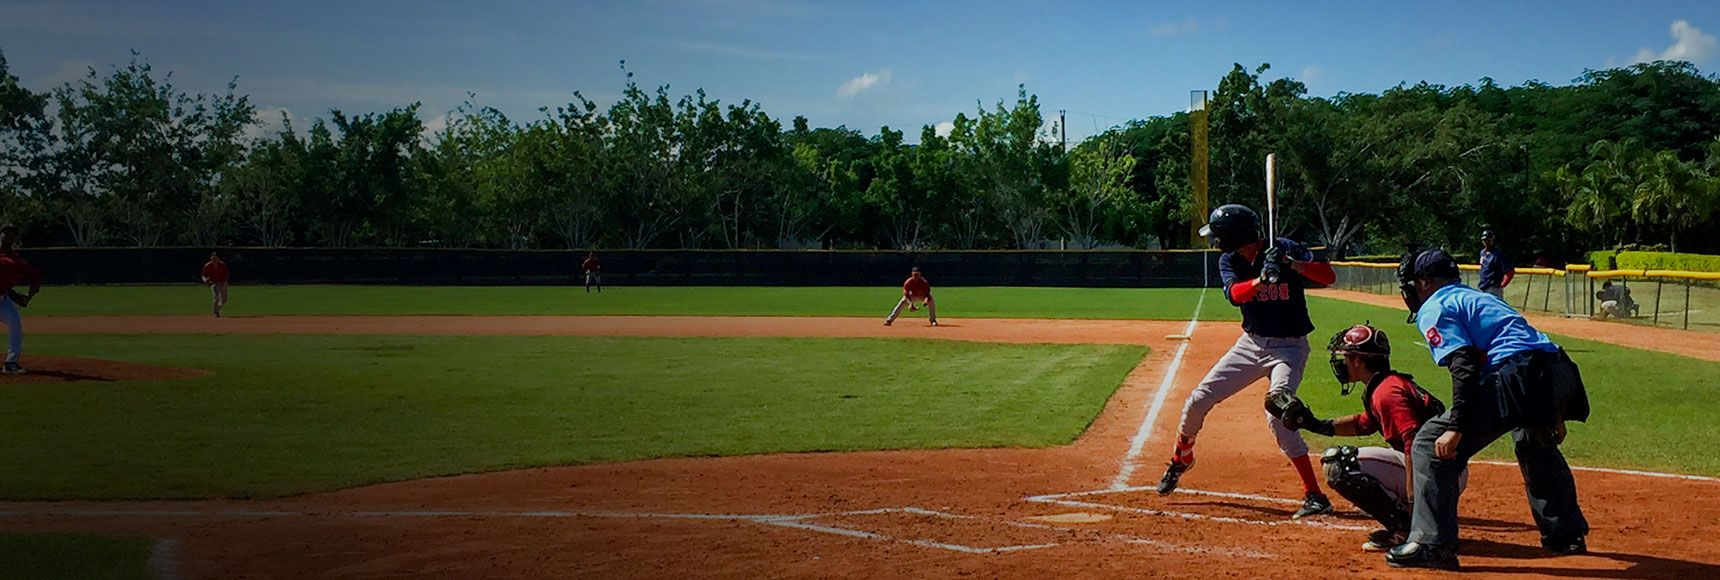 Baseball in the Dominican Republic hero image